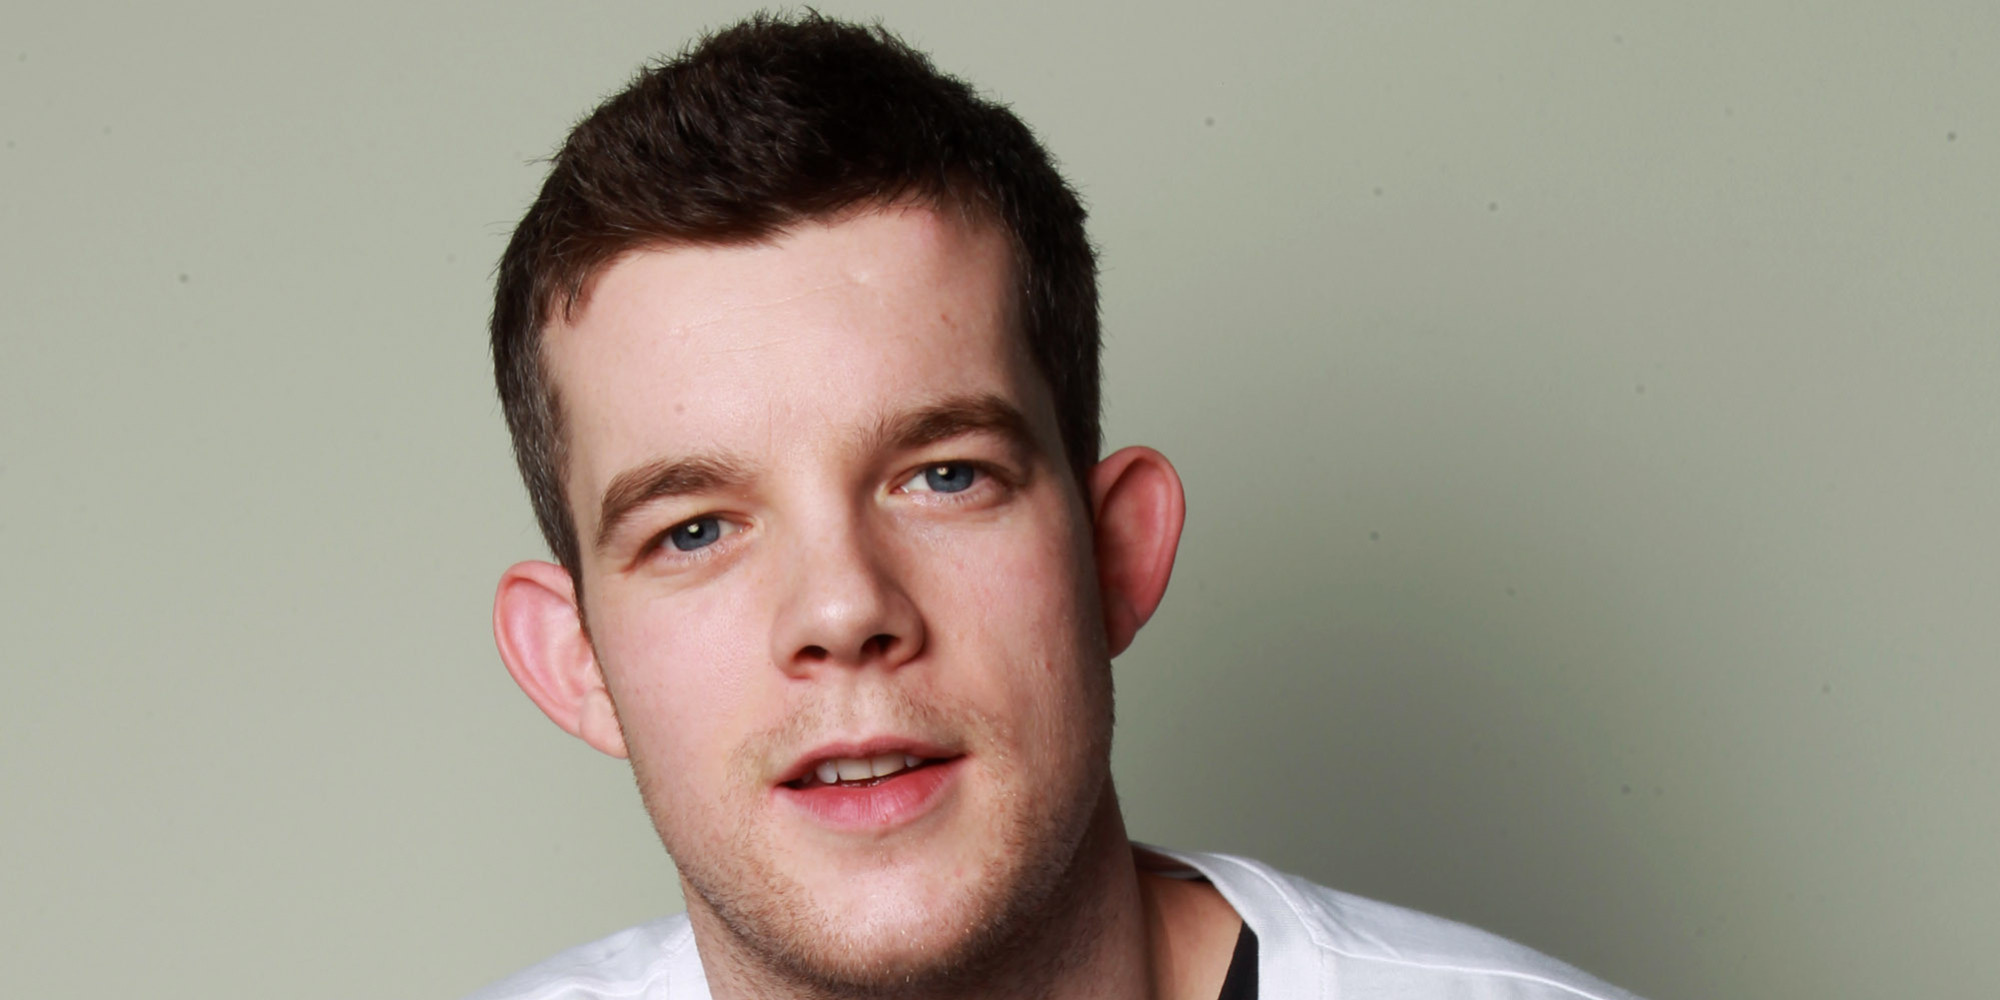 russell tovey tattoo